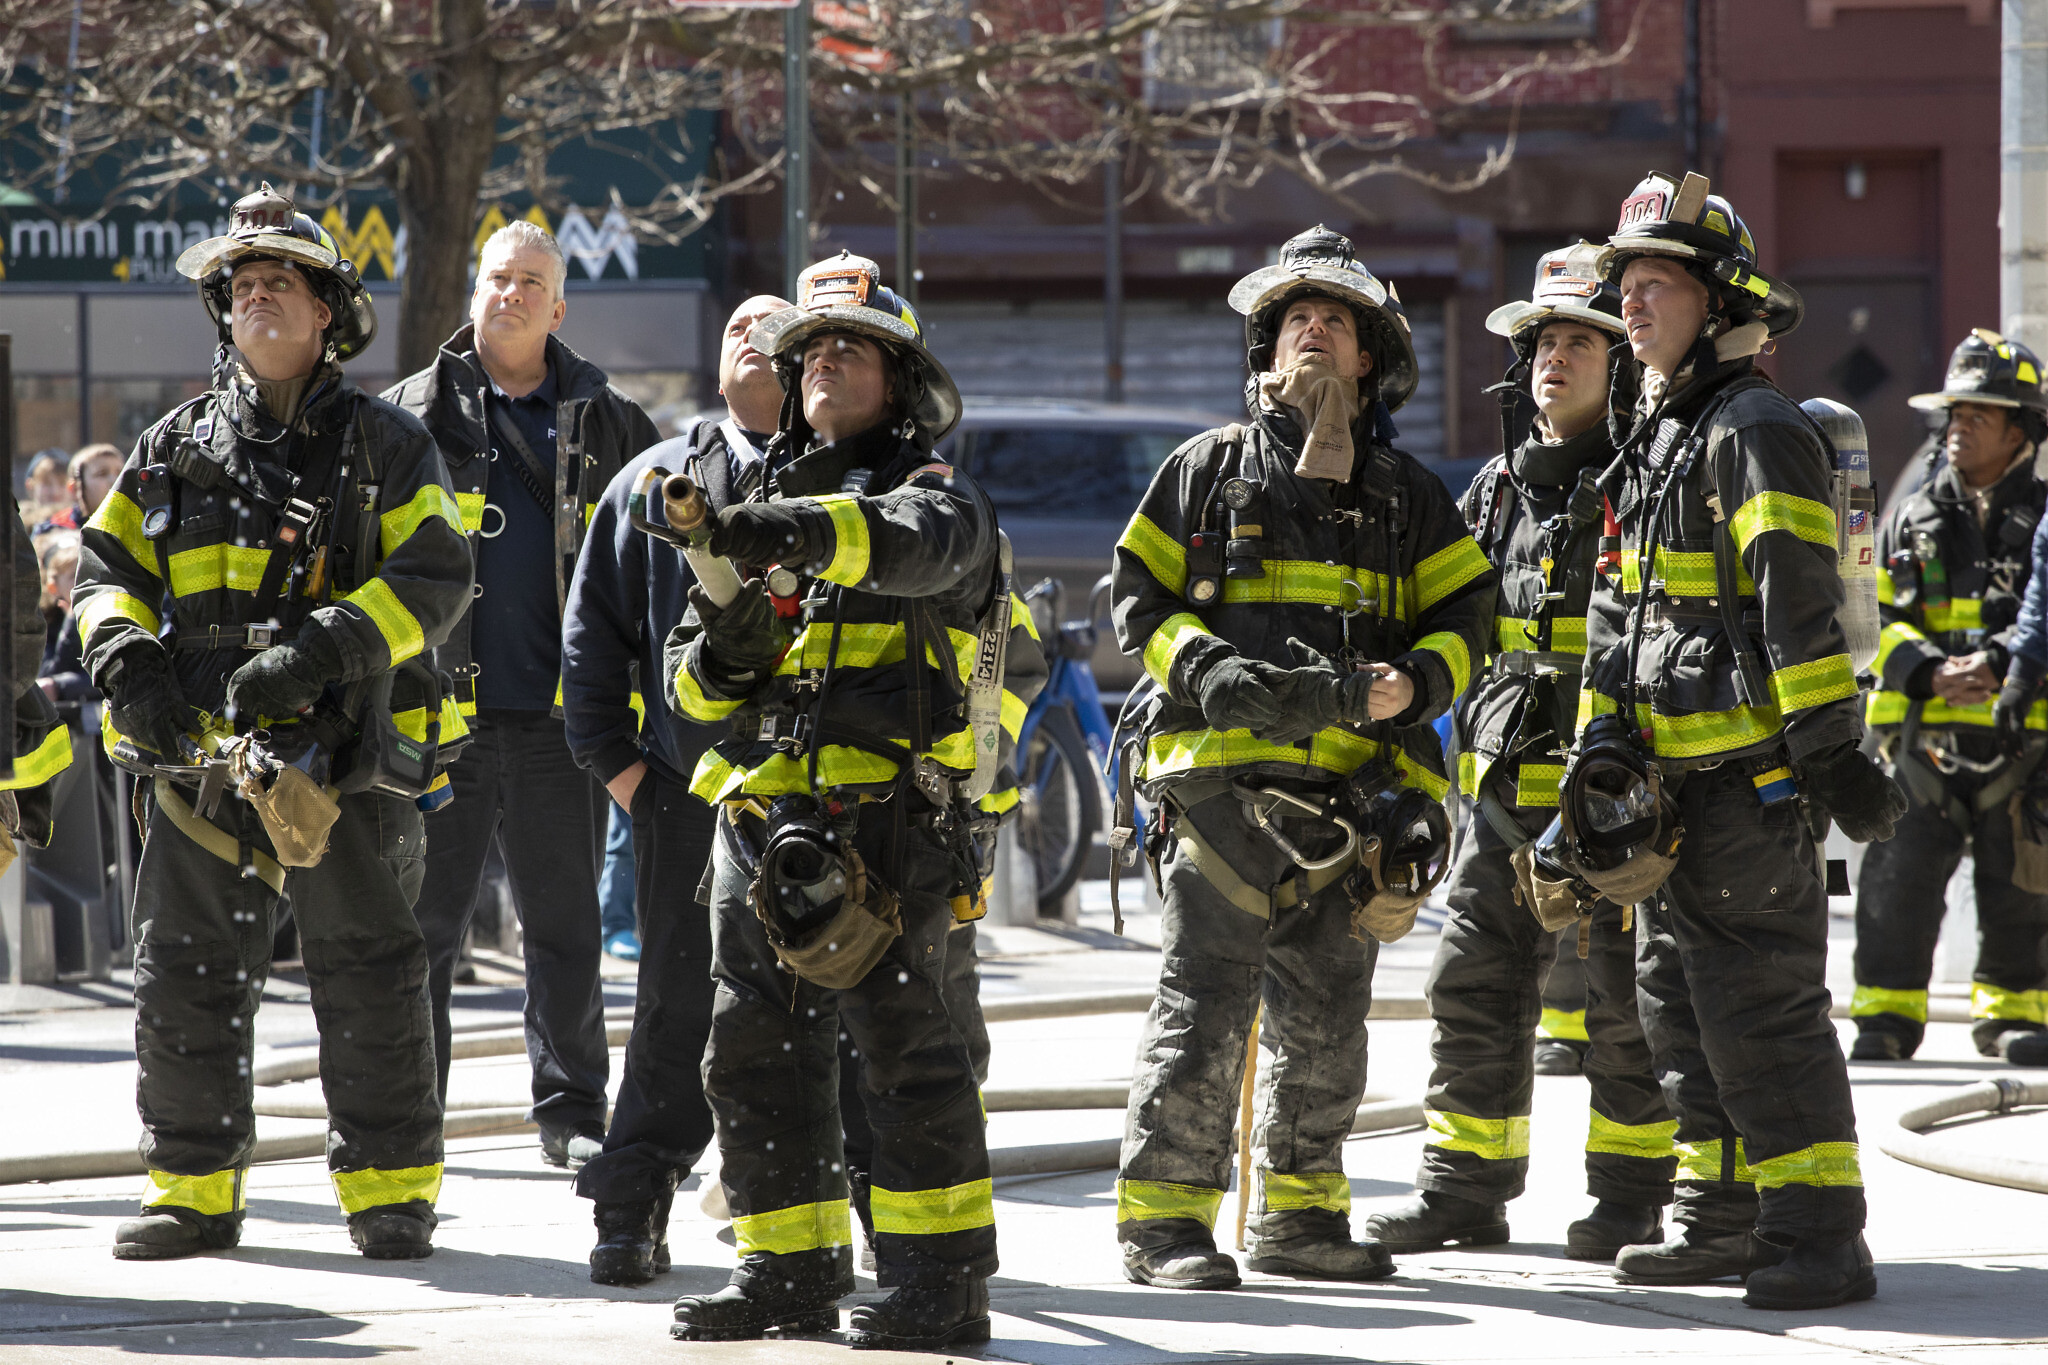 Transportation worker killed in suspicious New York City subway fire, police say